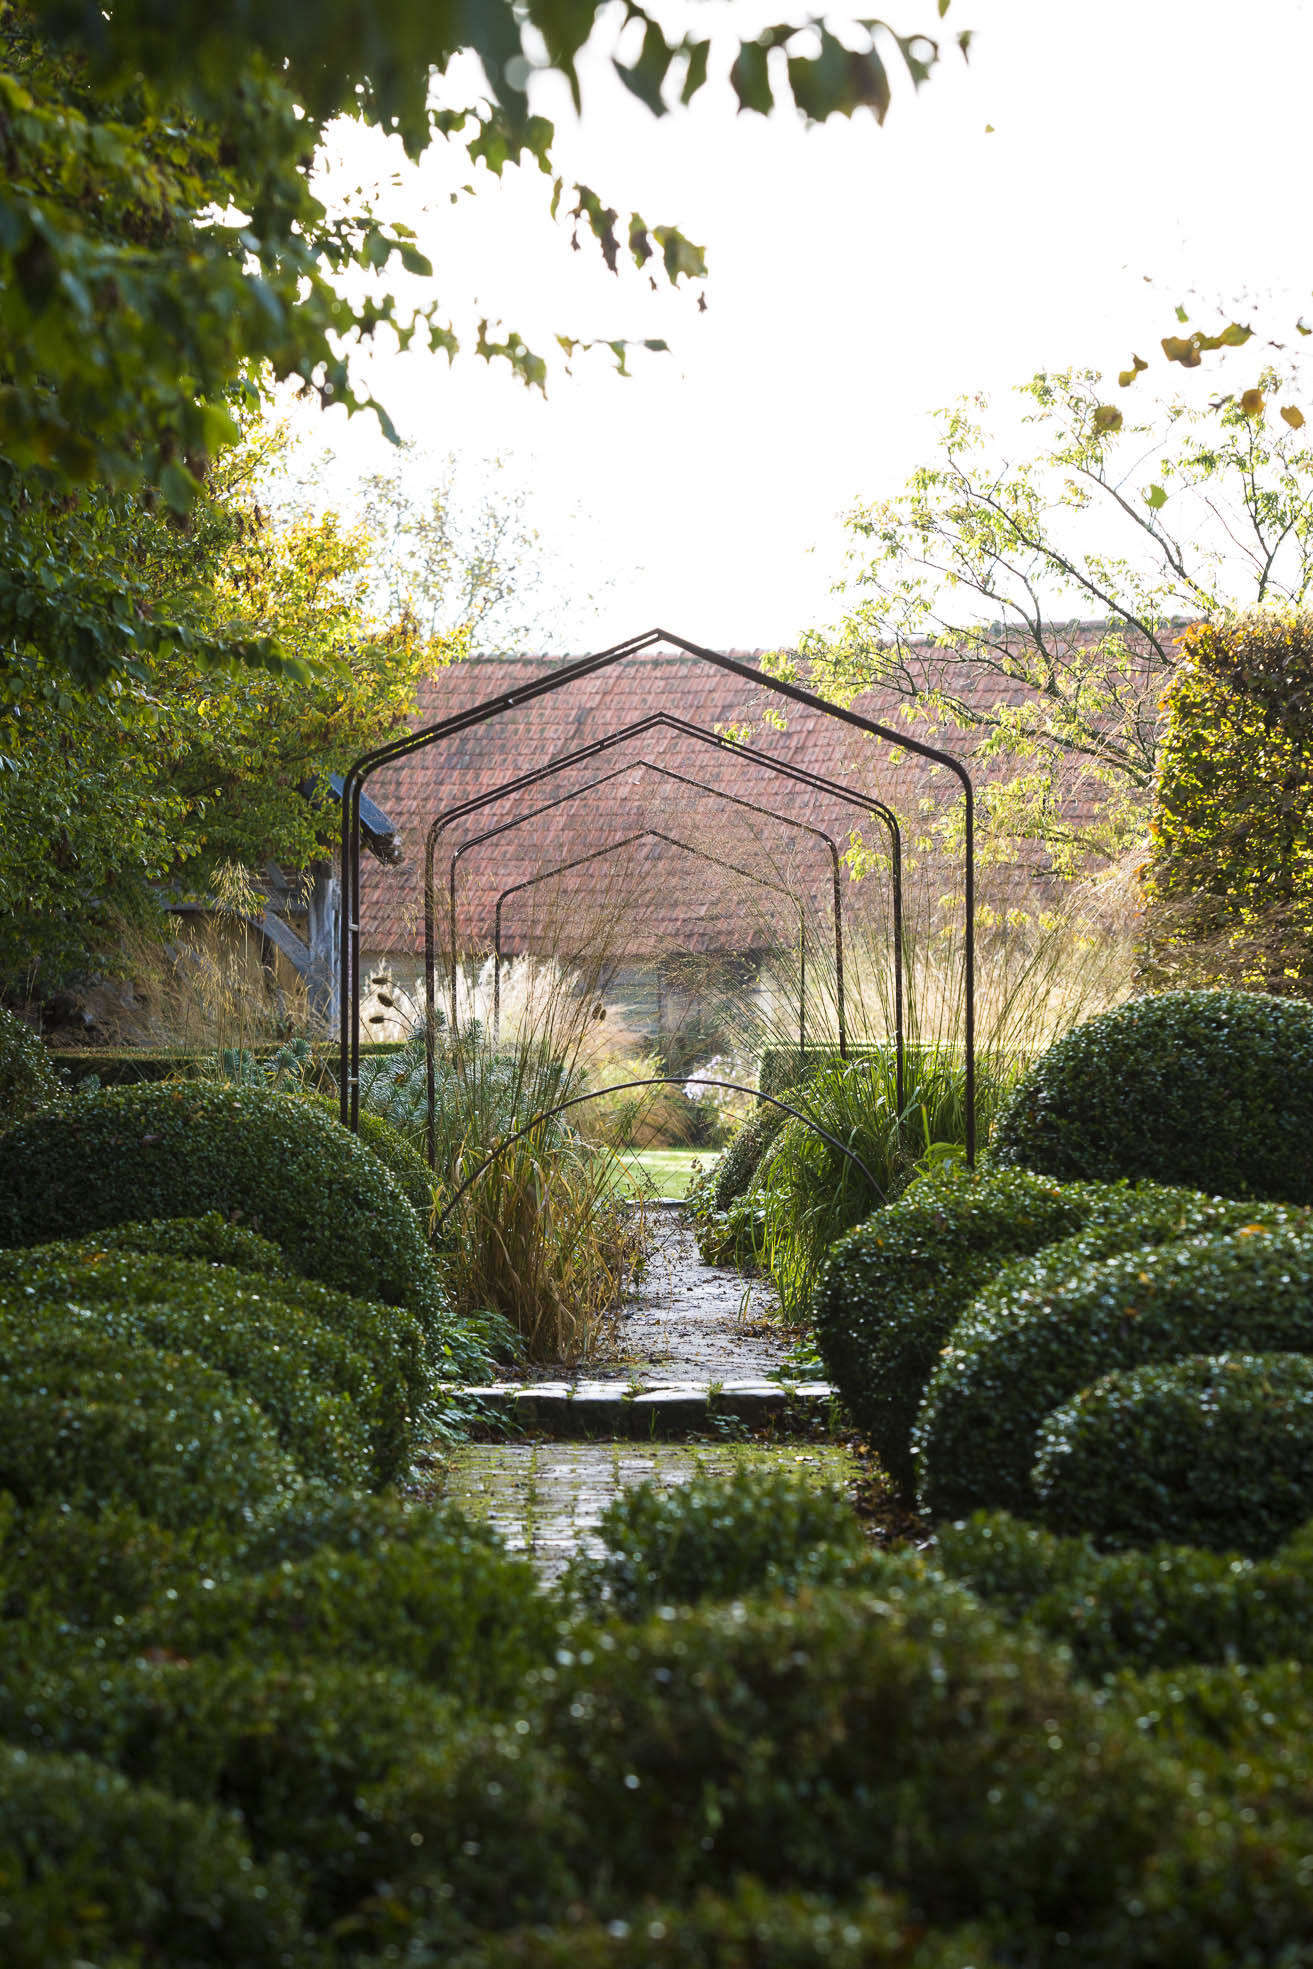 The formality of very straight walls of boxwood in the garden beyond gives way to rounder shapes, in a castle meets cottage atmosphere that is reminiscent of Sissinghurst, just across the English channel. The view through a series of hedge styles ends at a barn that is partially obscured by Stipa gigantea.